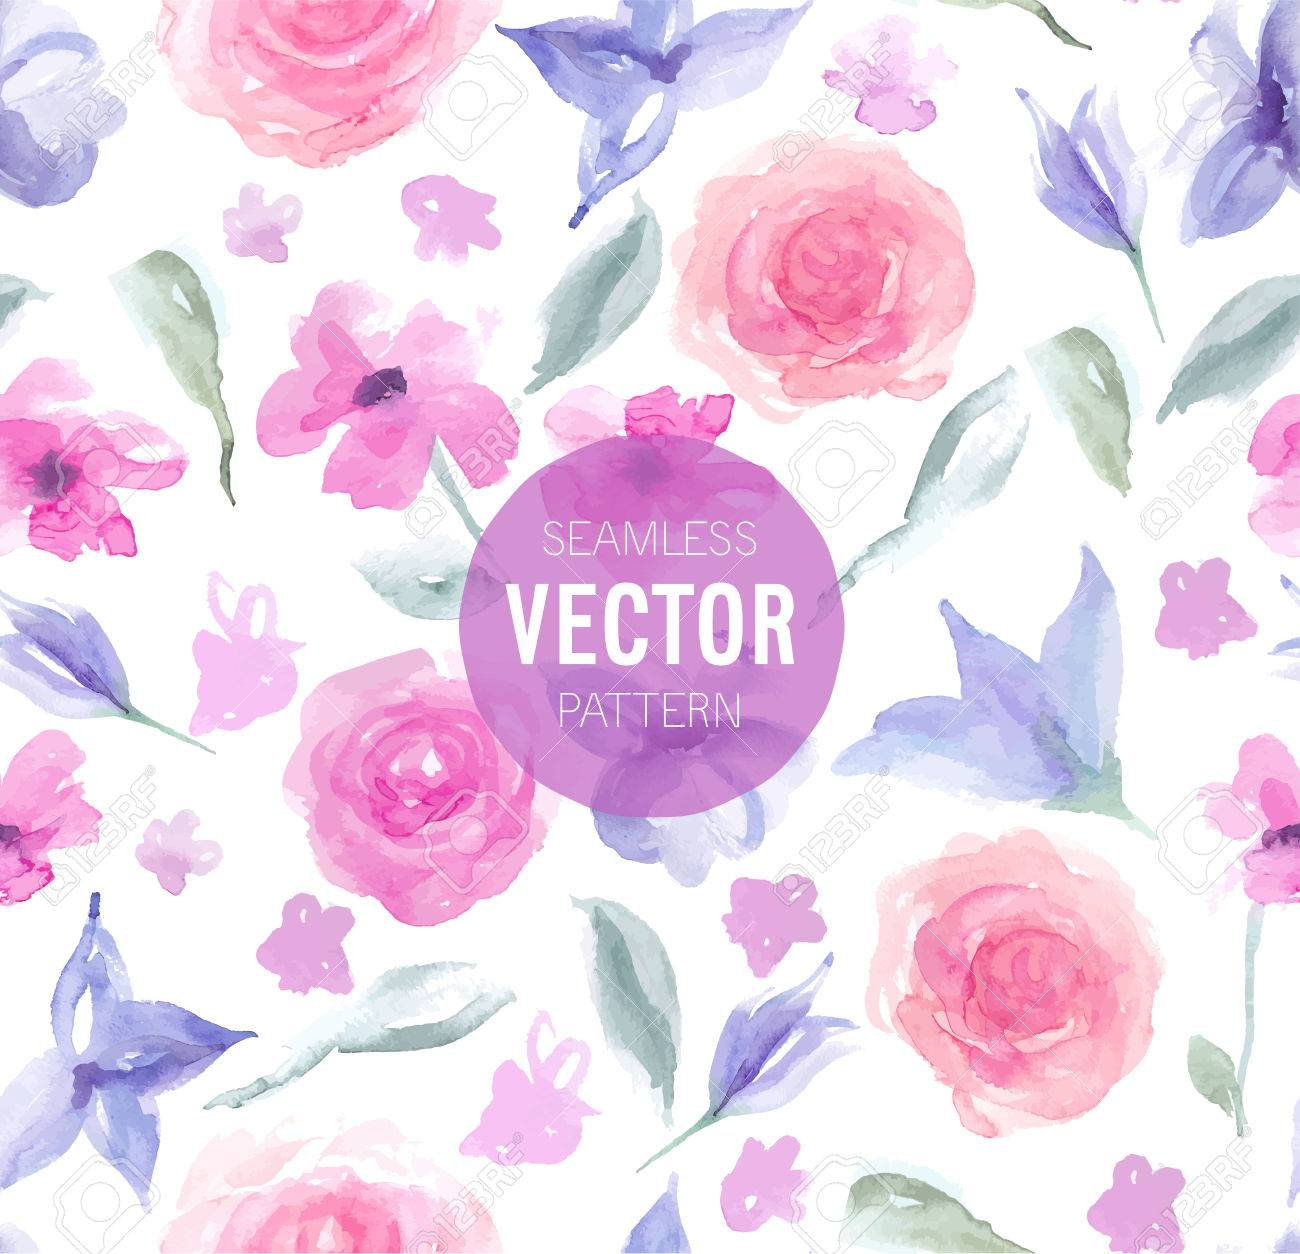 Watercolor rose seamless pattern. Vector illustration. - 39681968